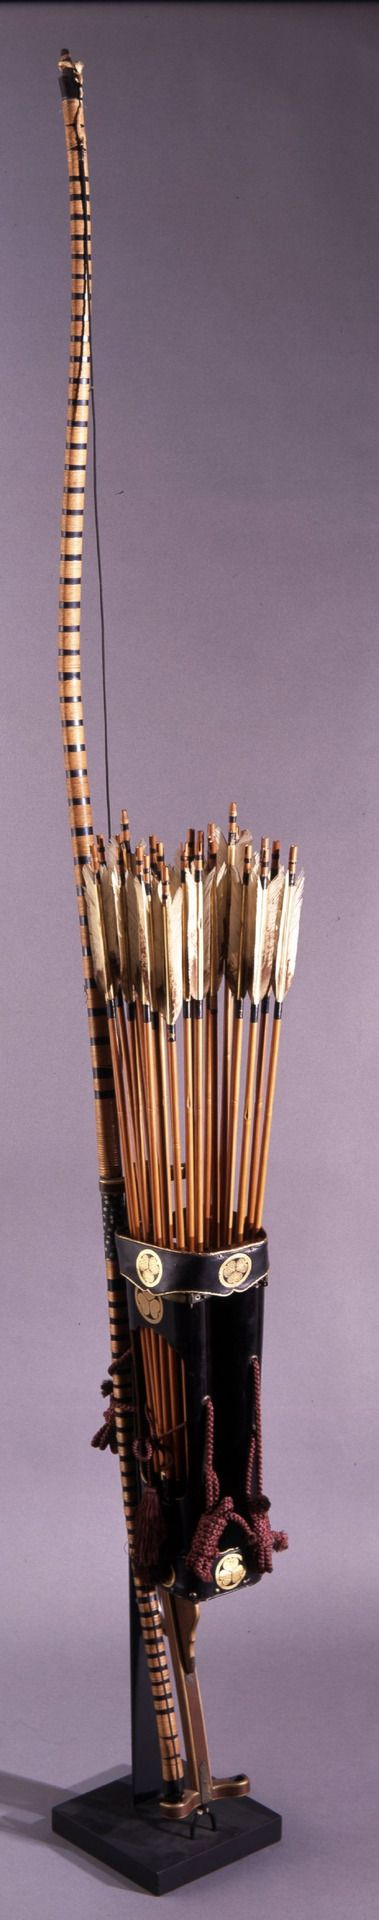 Archery set, one bow missing. Edo period,early to mid 19th century, Japan.